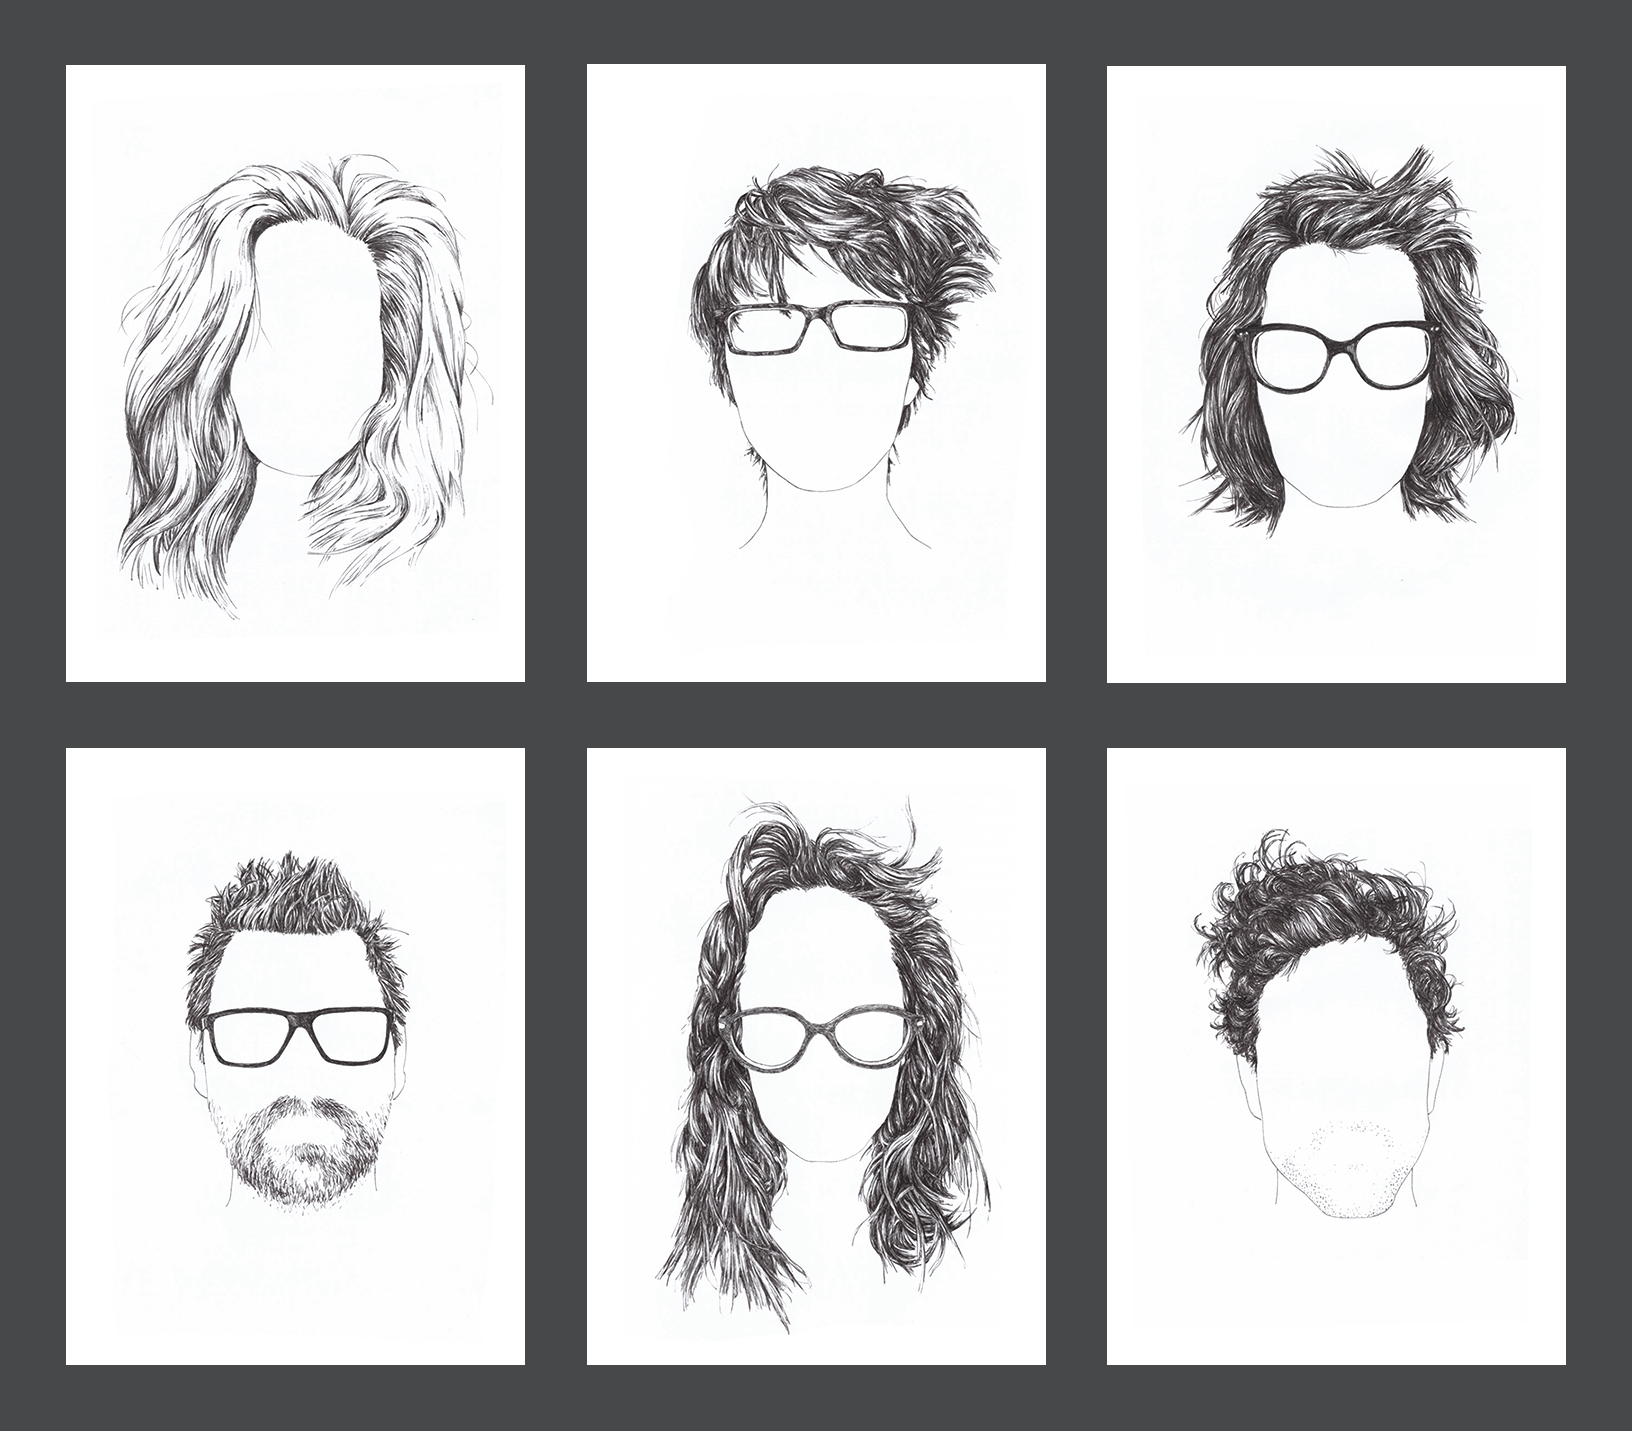 six line drawings of wild morning hair, glasses included but faces blank